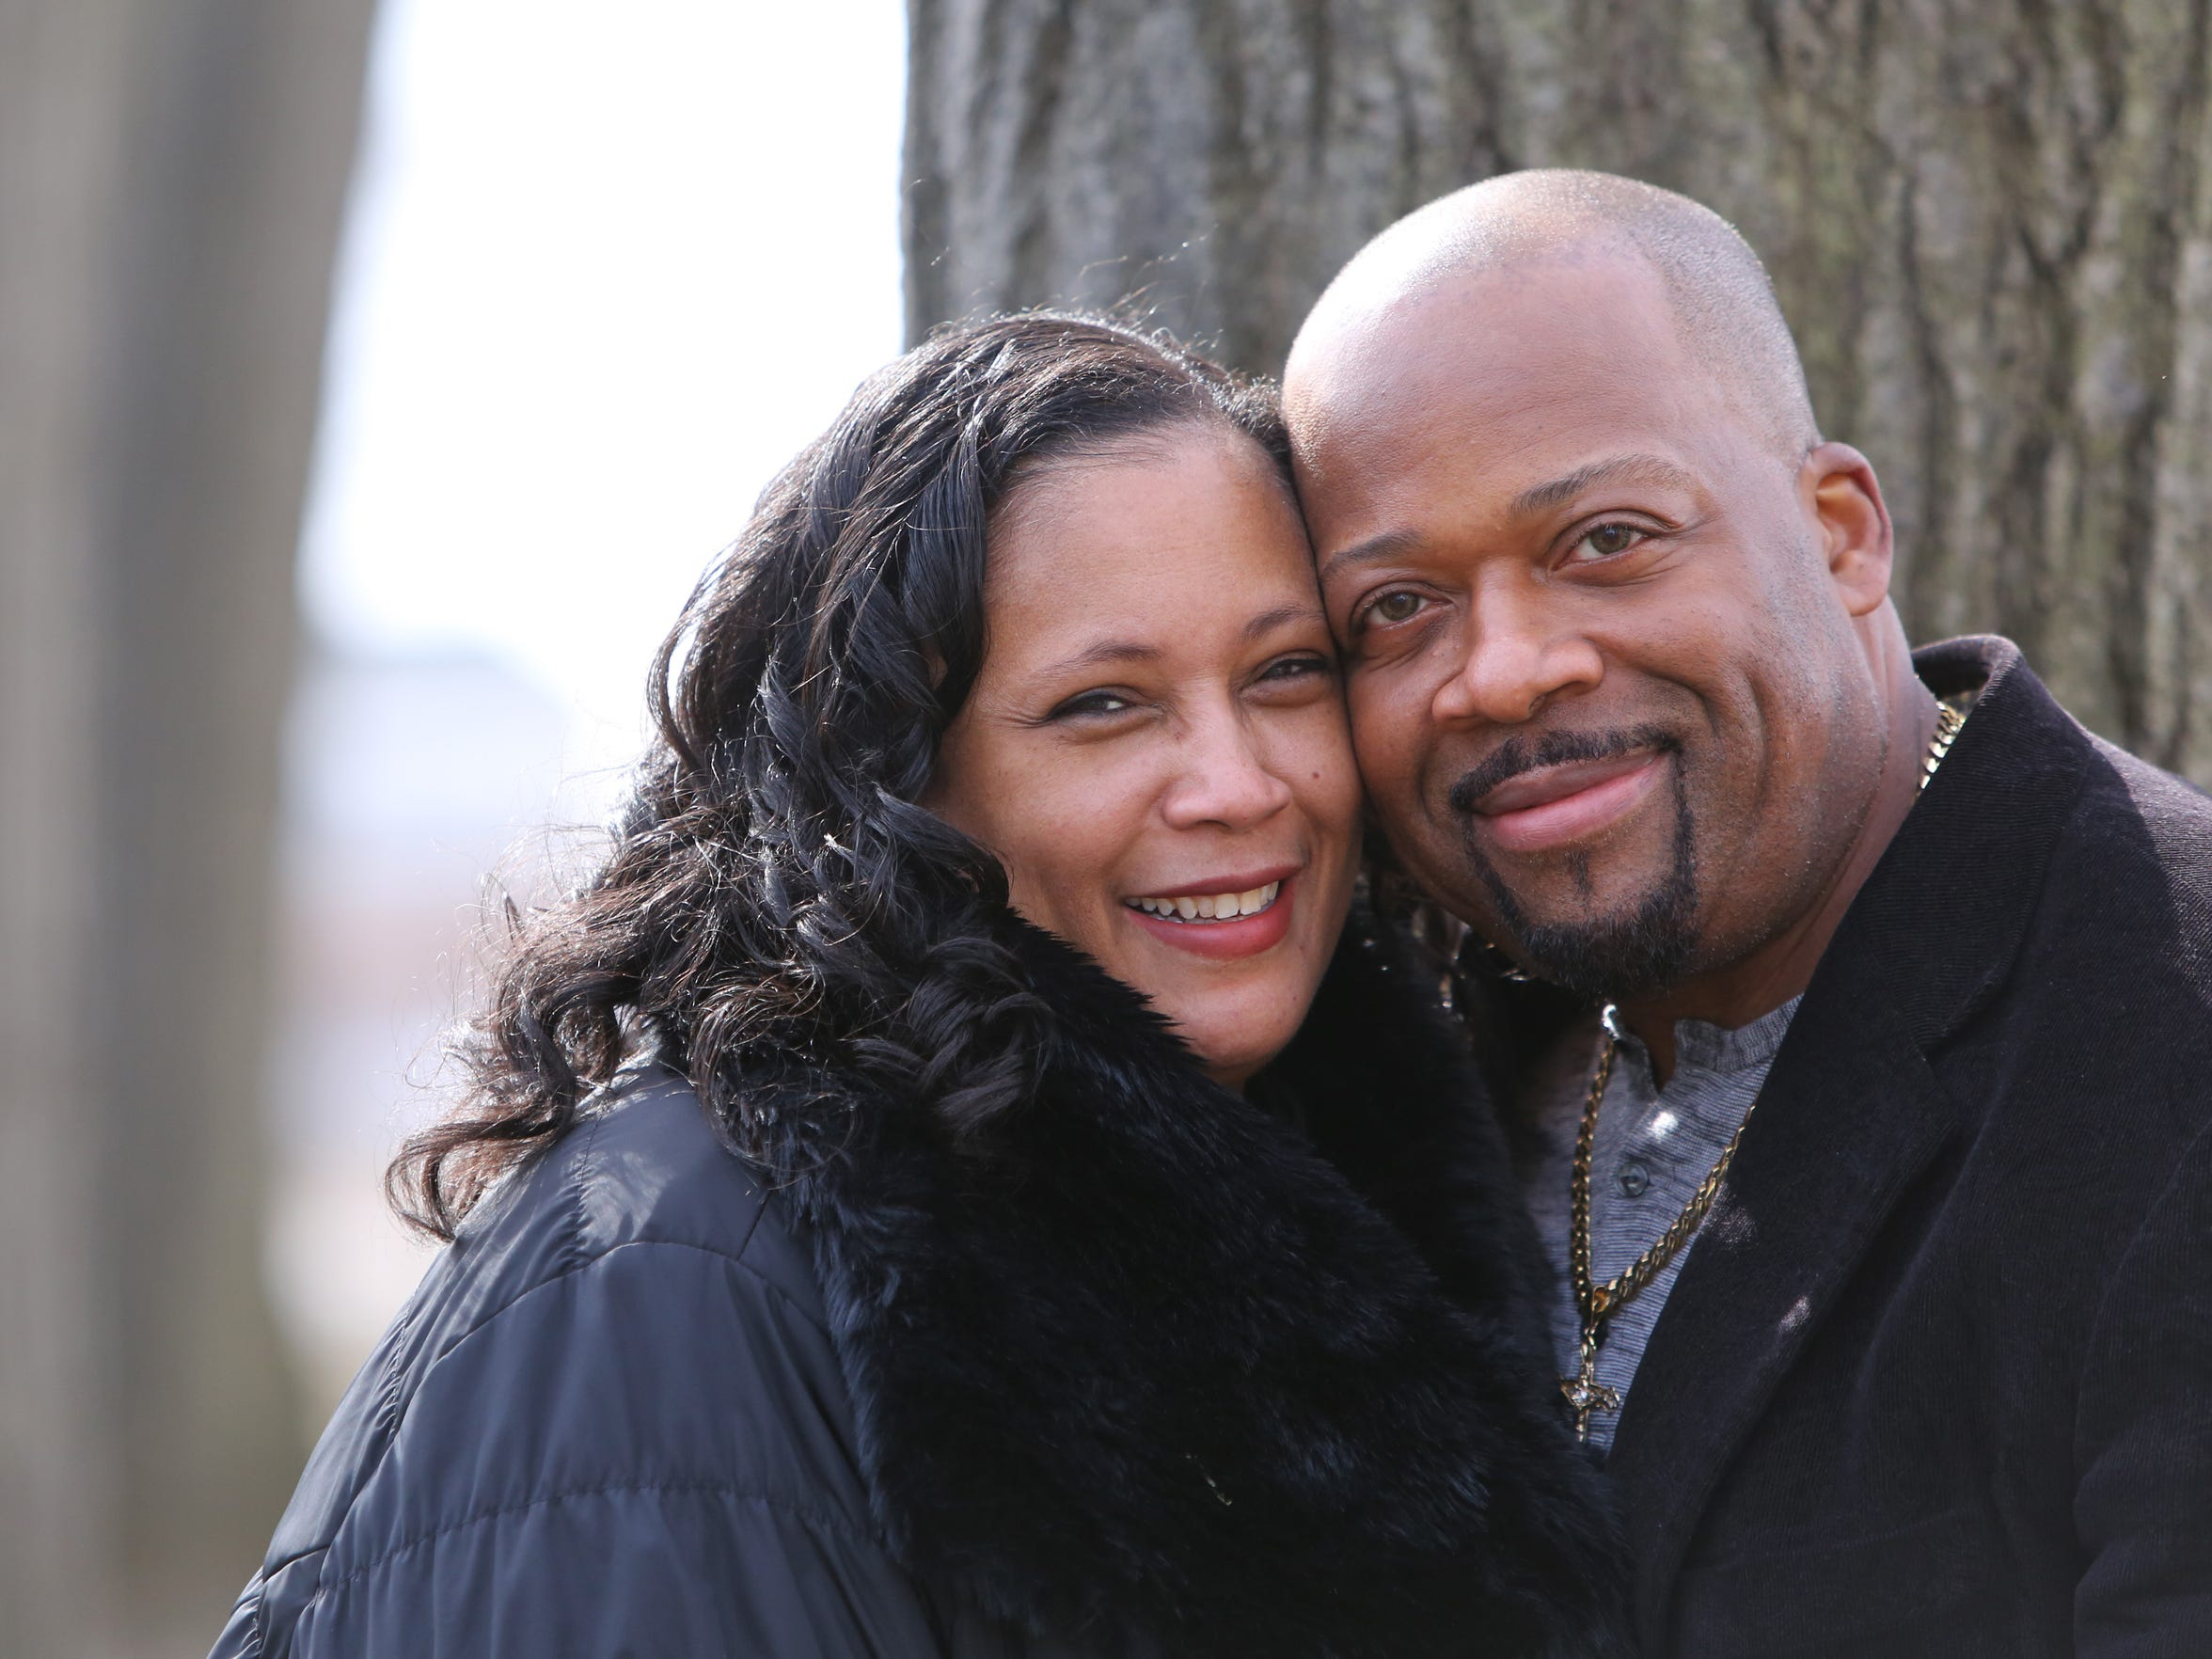 The Johnsons pose at Marist College, where they met while in high school, Feb. 3, 2017.